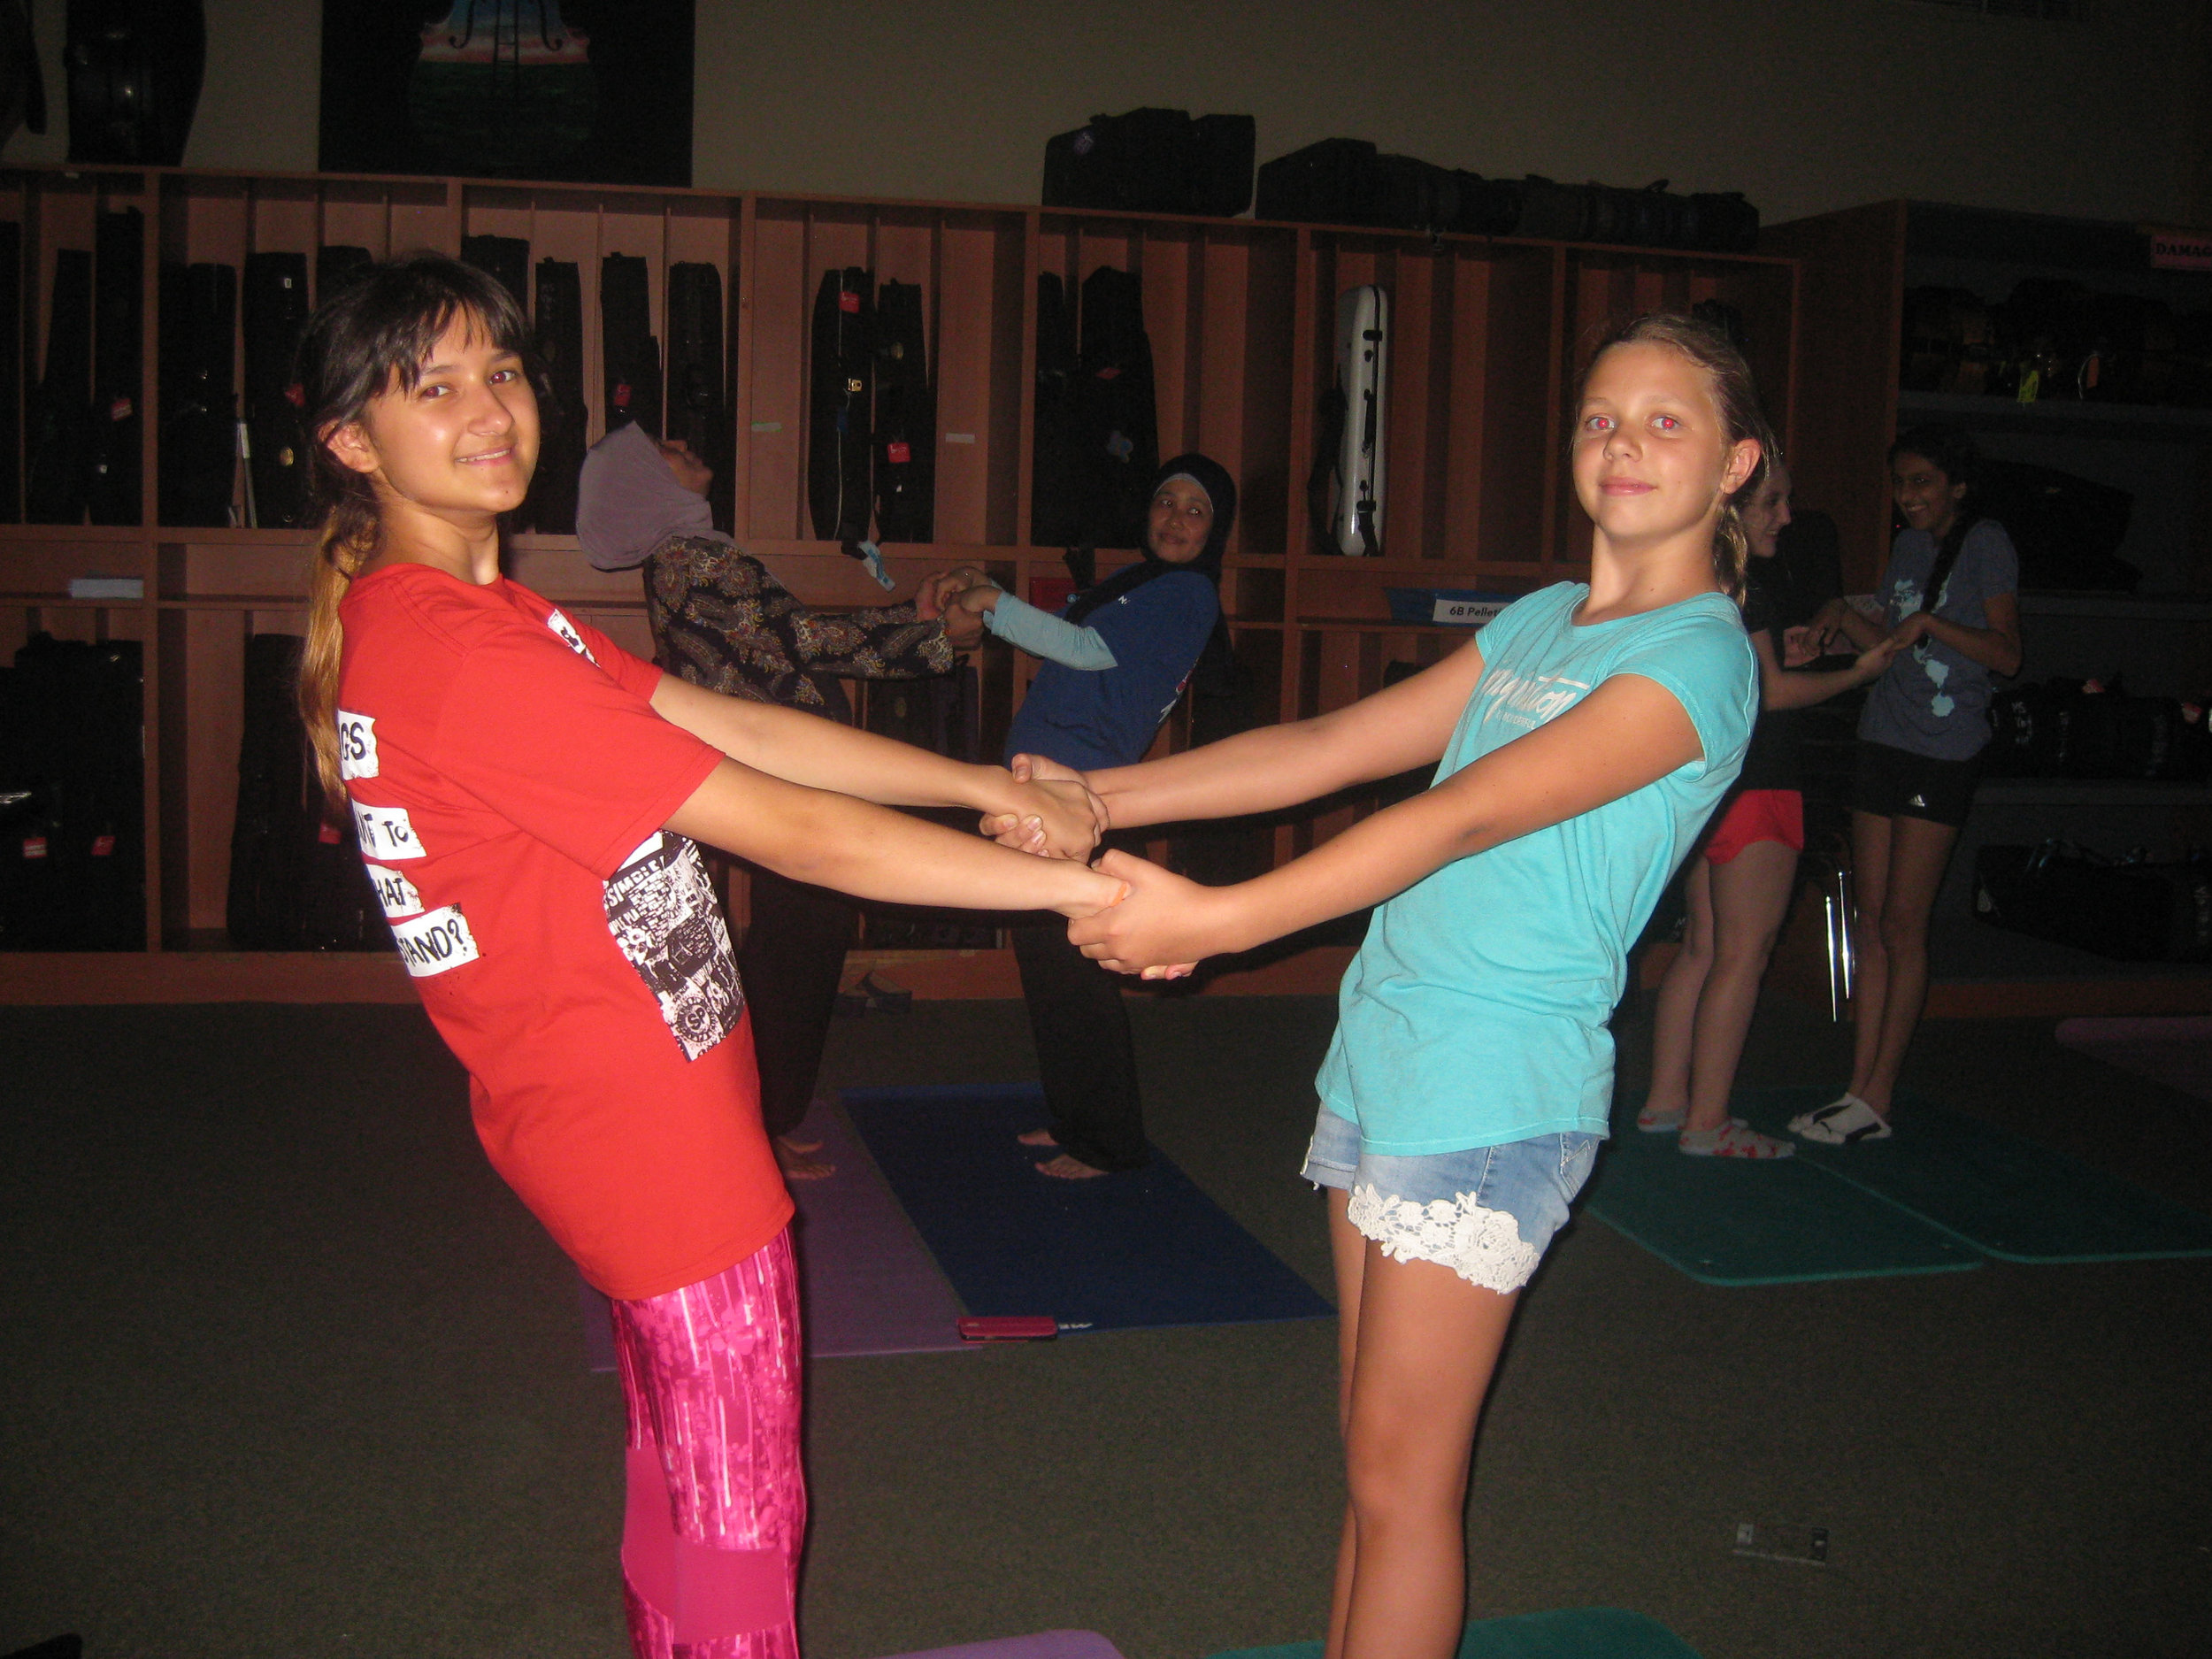 Copy of Yoga Club.jpg